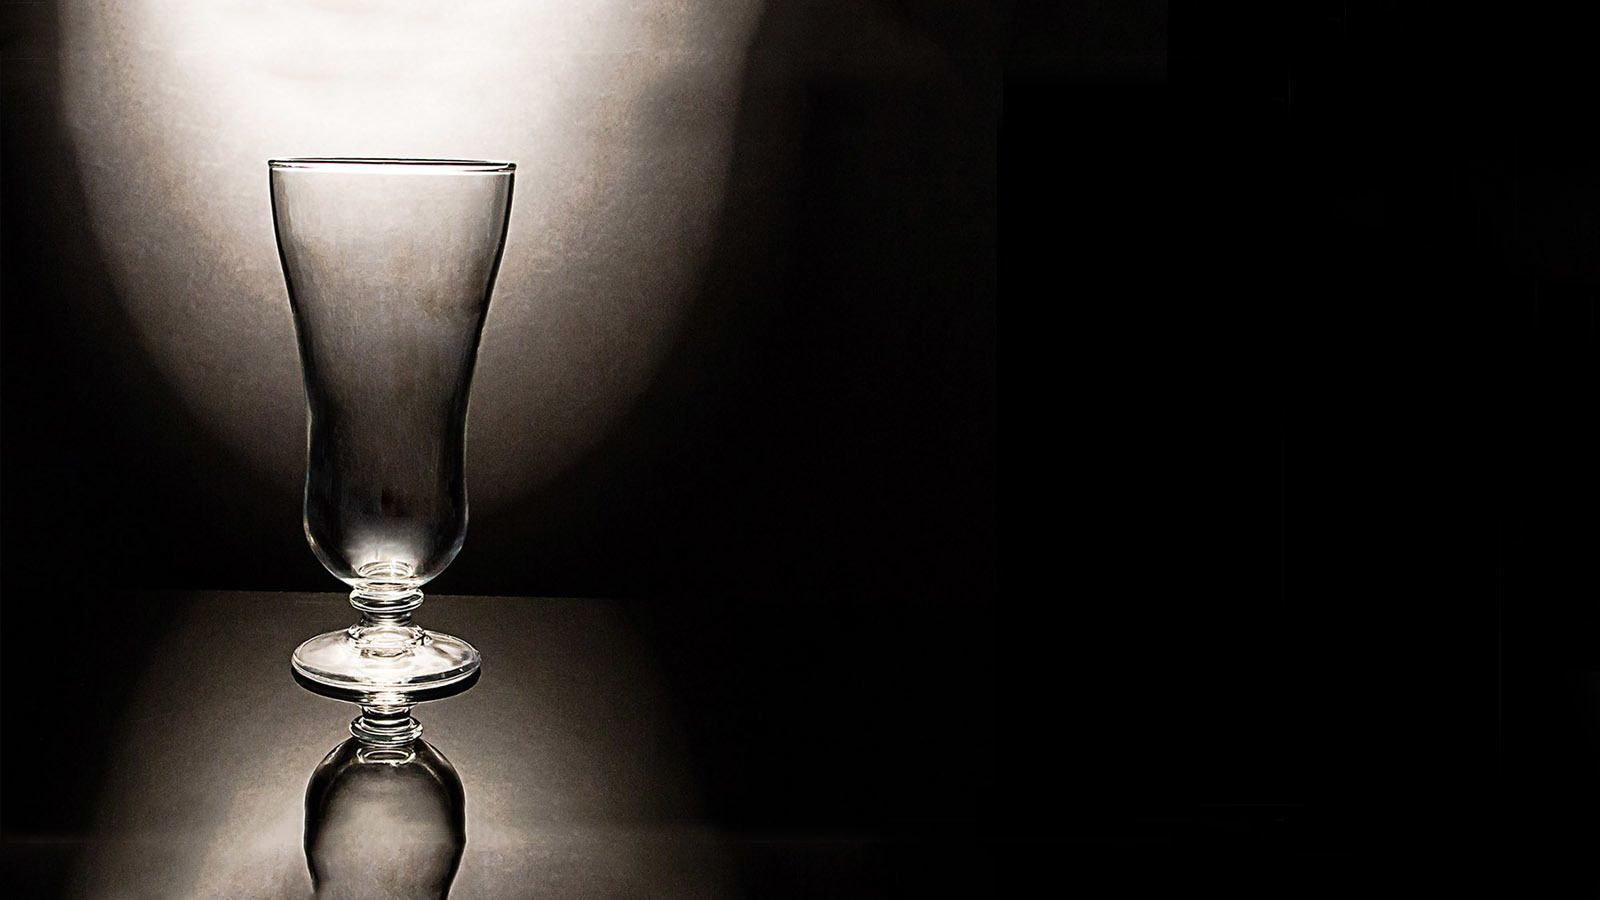 Tutorial lighting drinks and other product photography - Photography